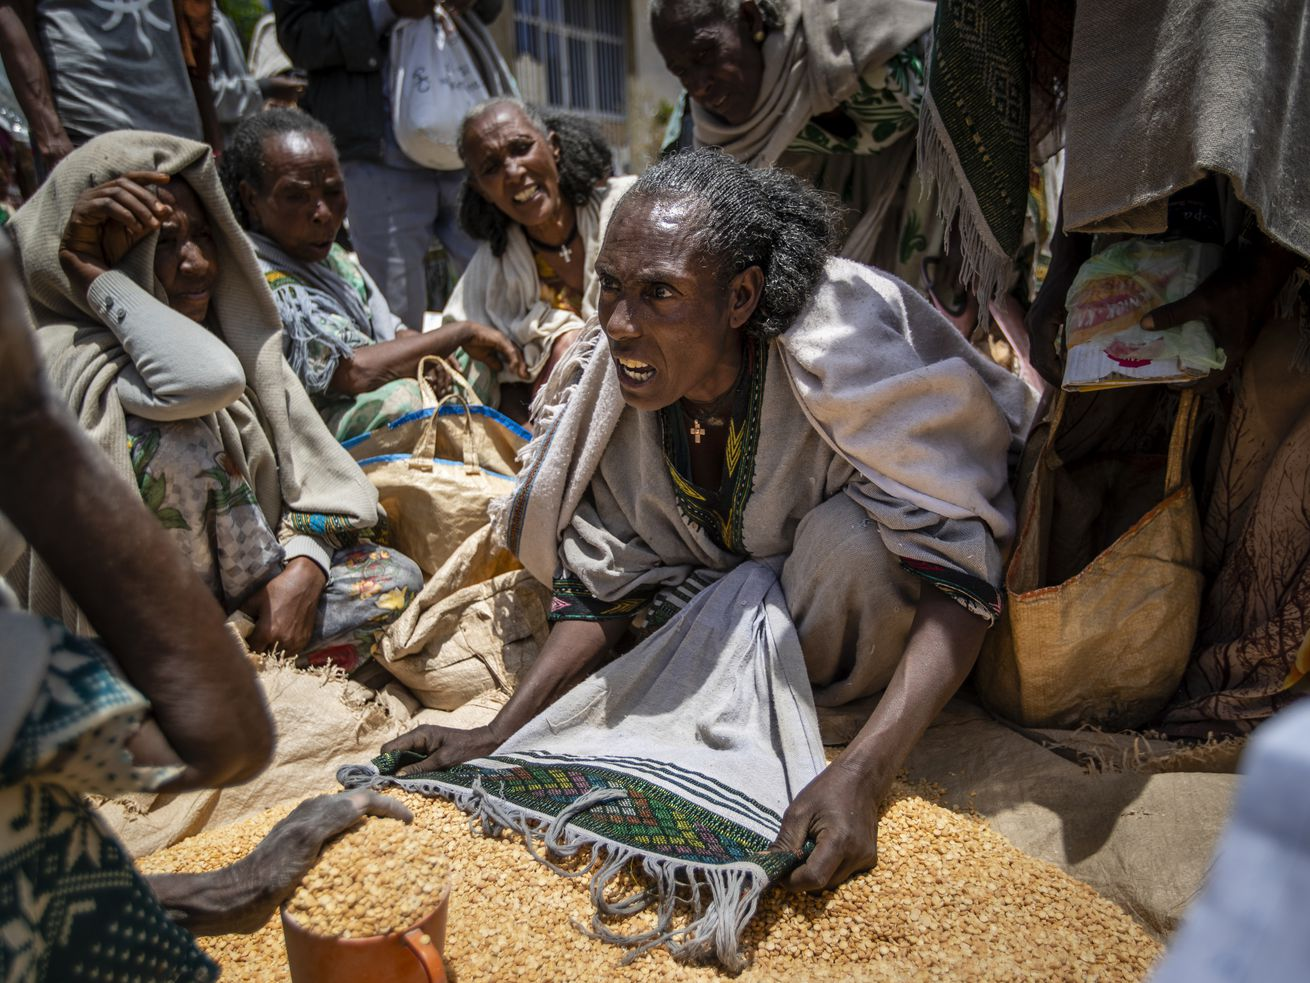 An Ethiopian woman argues with others over the allocation of yellow split peas after it was distributed by the Relief Society of Tigray in the town of Agula, in the Tigray region of northern Ethiopia, on Saturday, May 8, 2021.